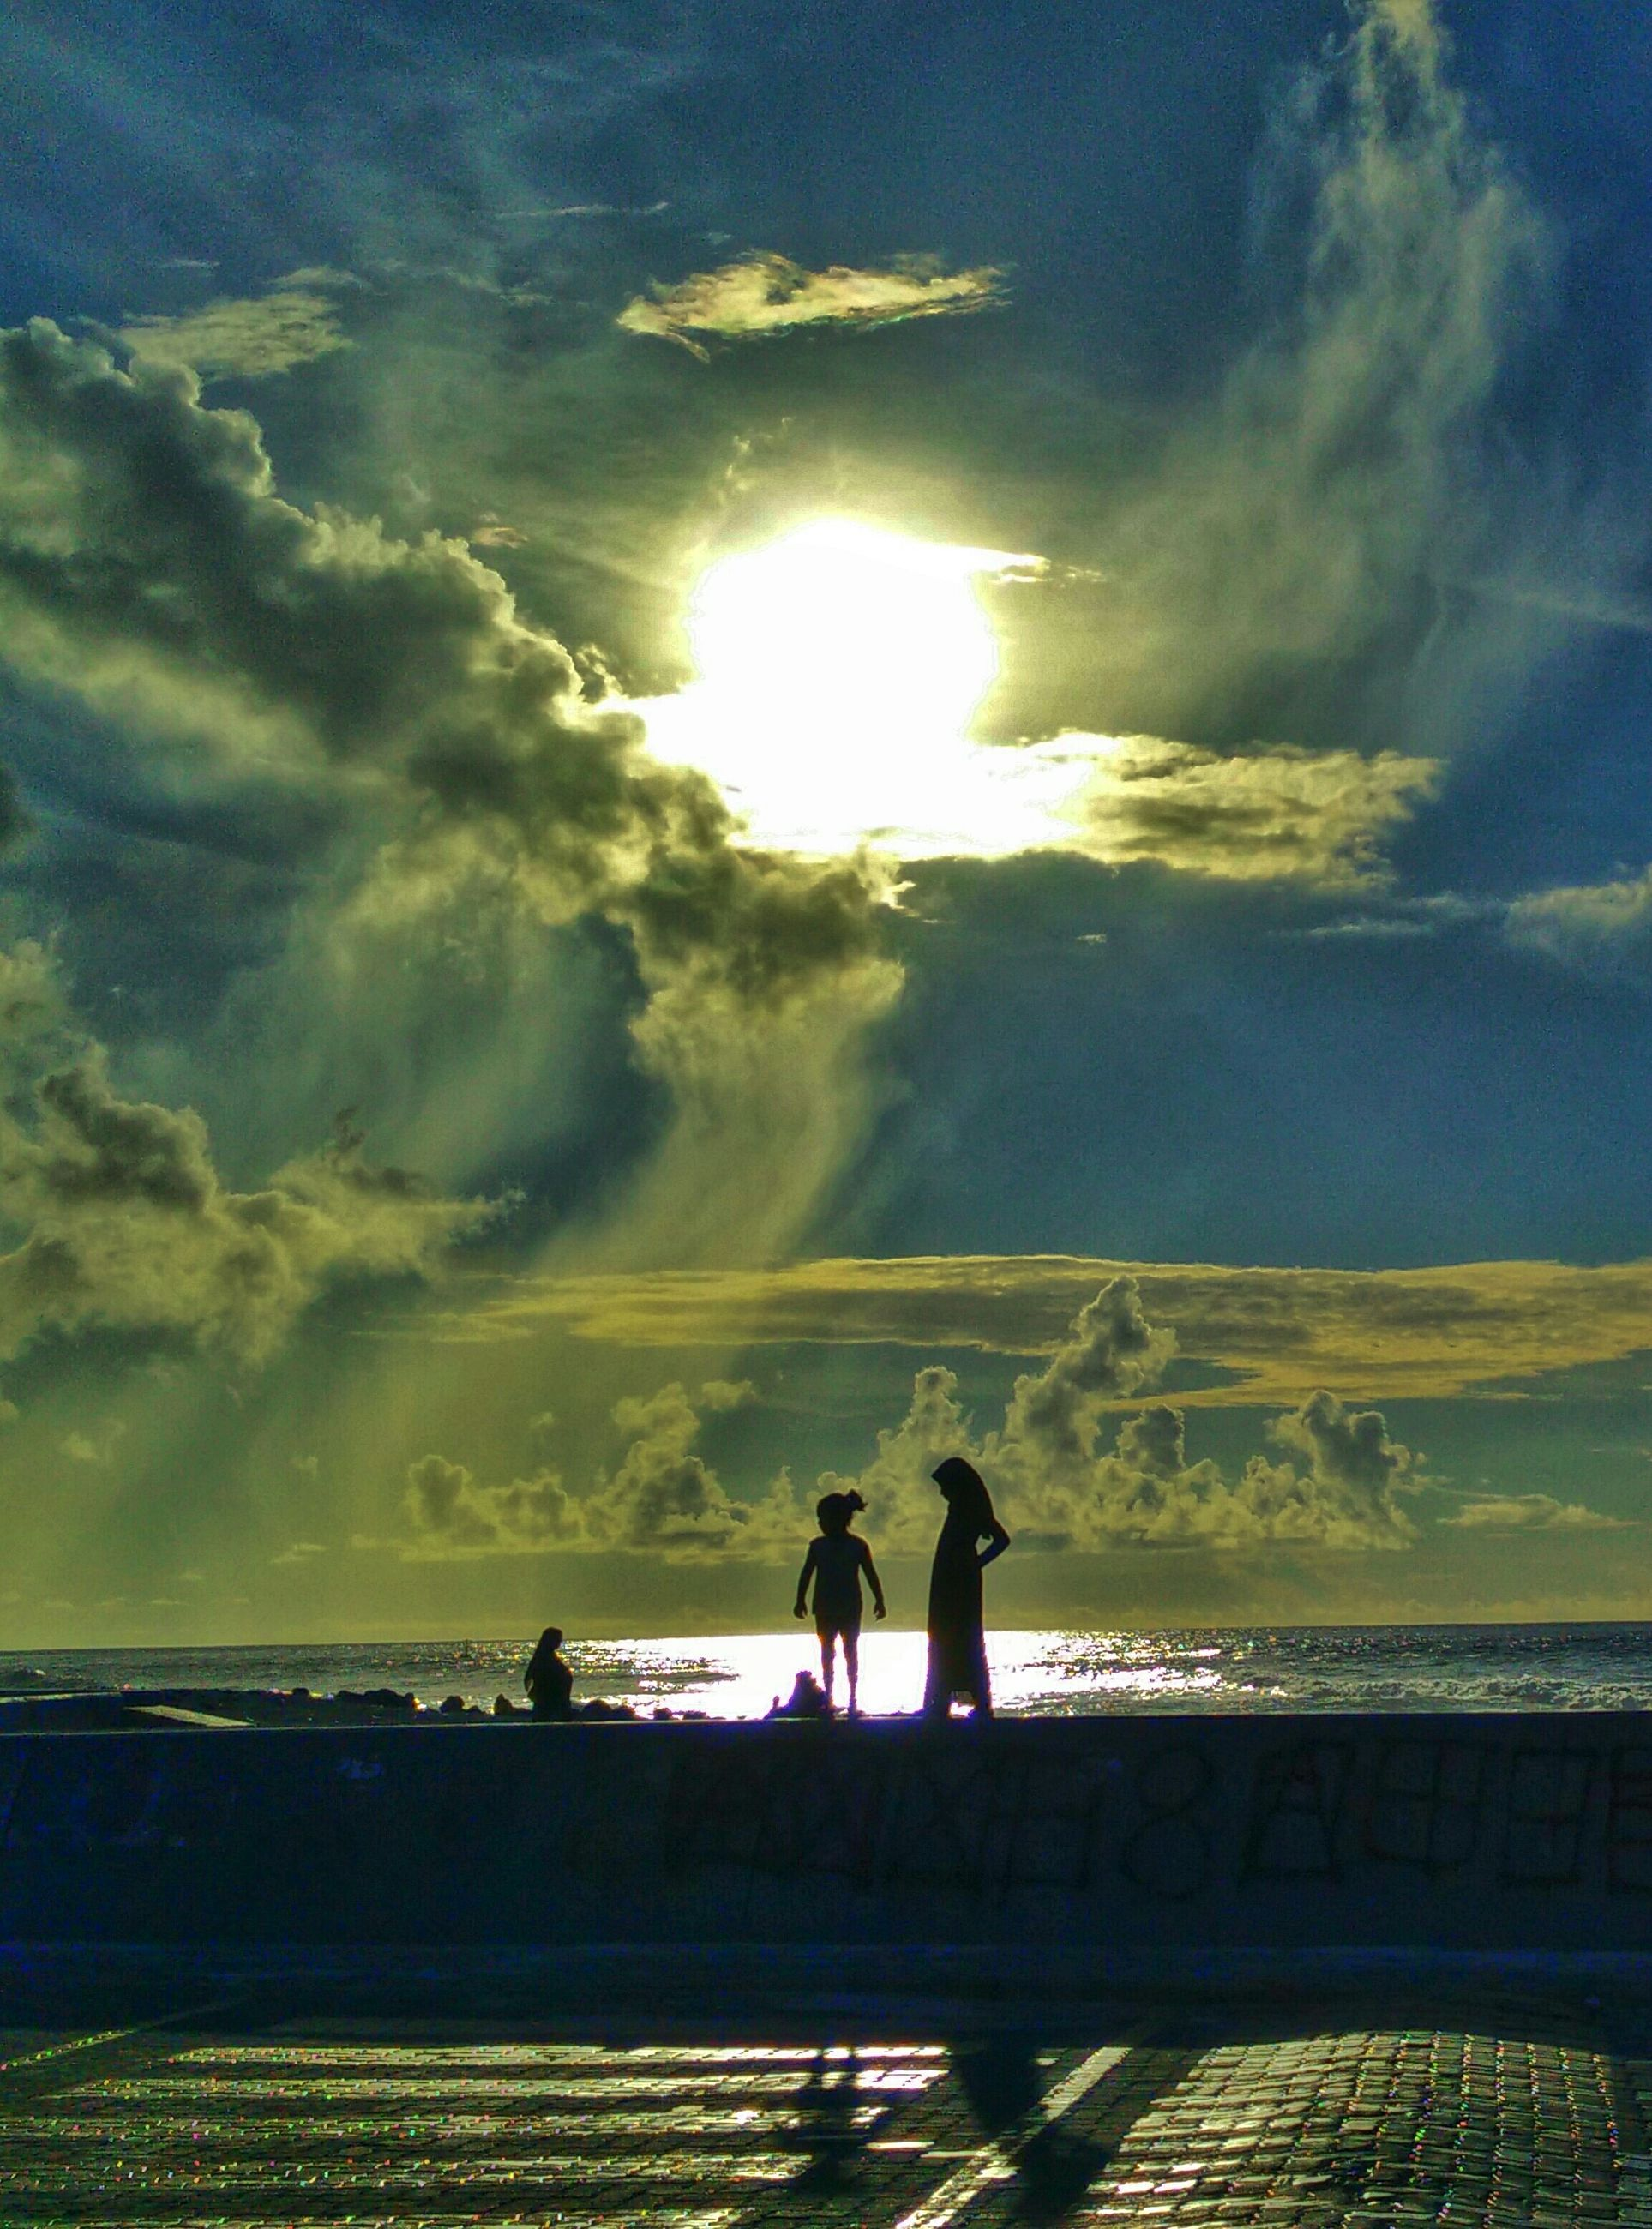 sky, lifestyles, leisure activity, silhouette, sunset, men, togetherness, cloud - sky, tranquil scene, standing, water, tranquility, beauty in nature, scenics, nature, rear view, bonding, person